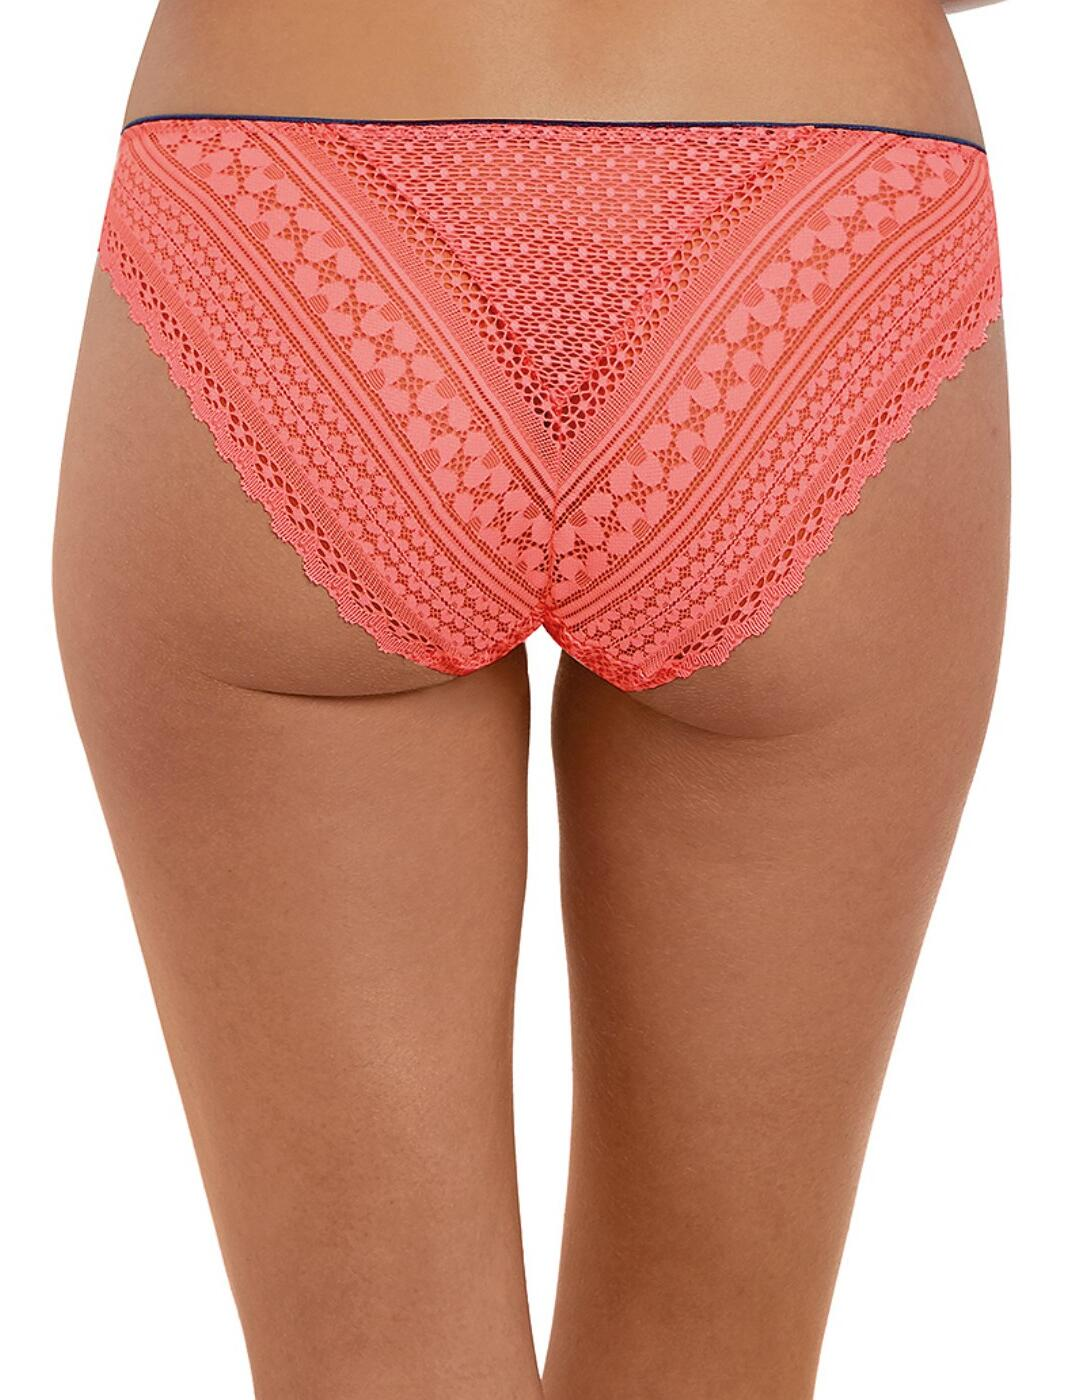 Freya Daisy Lace Brief Knickers 5135 New Womens Lingerie